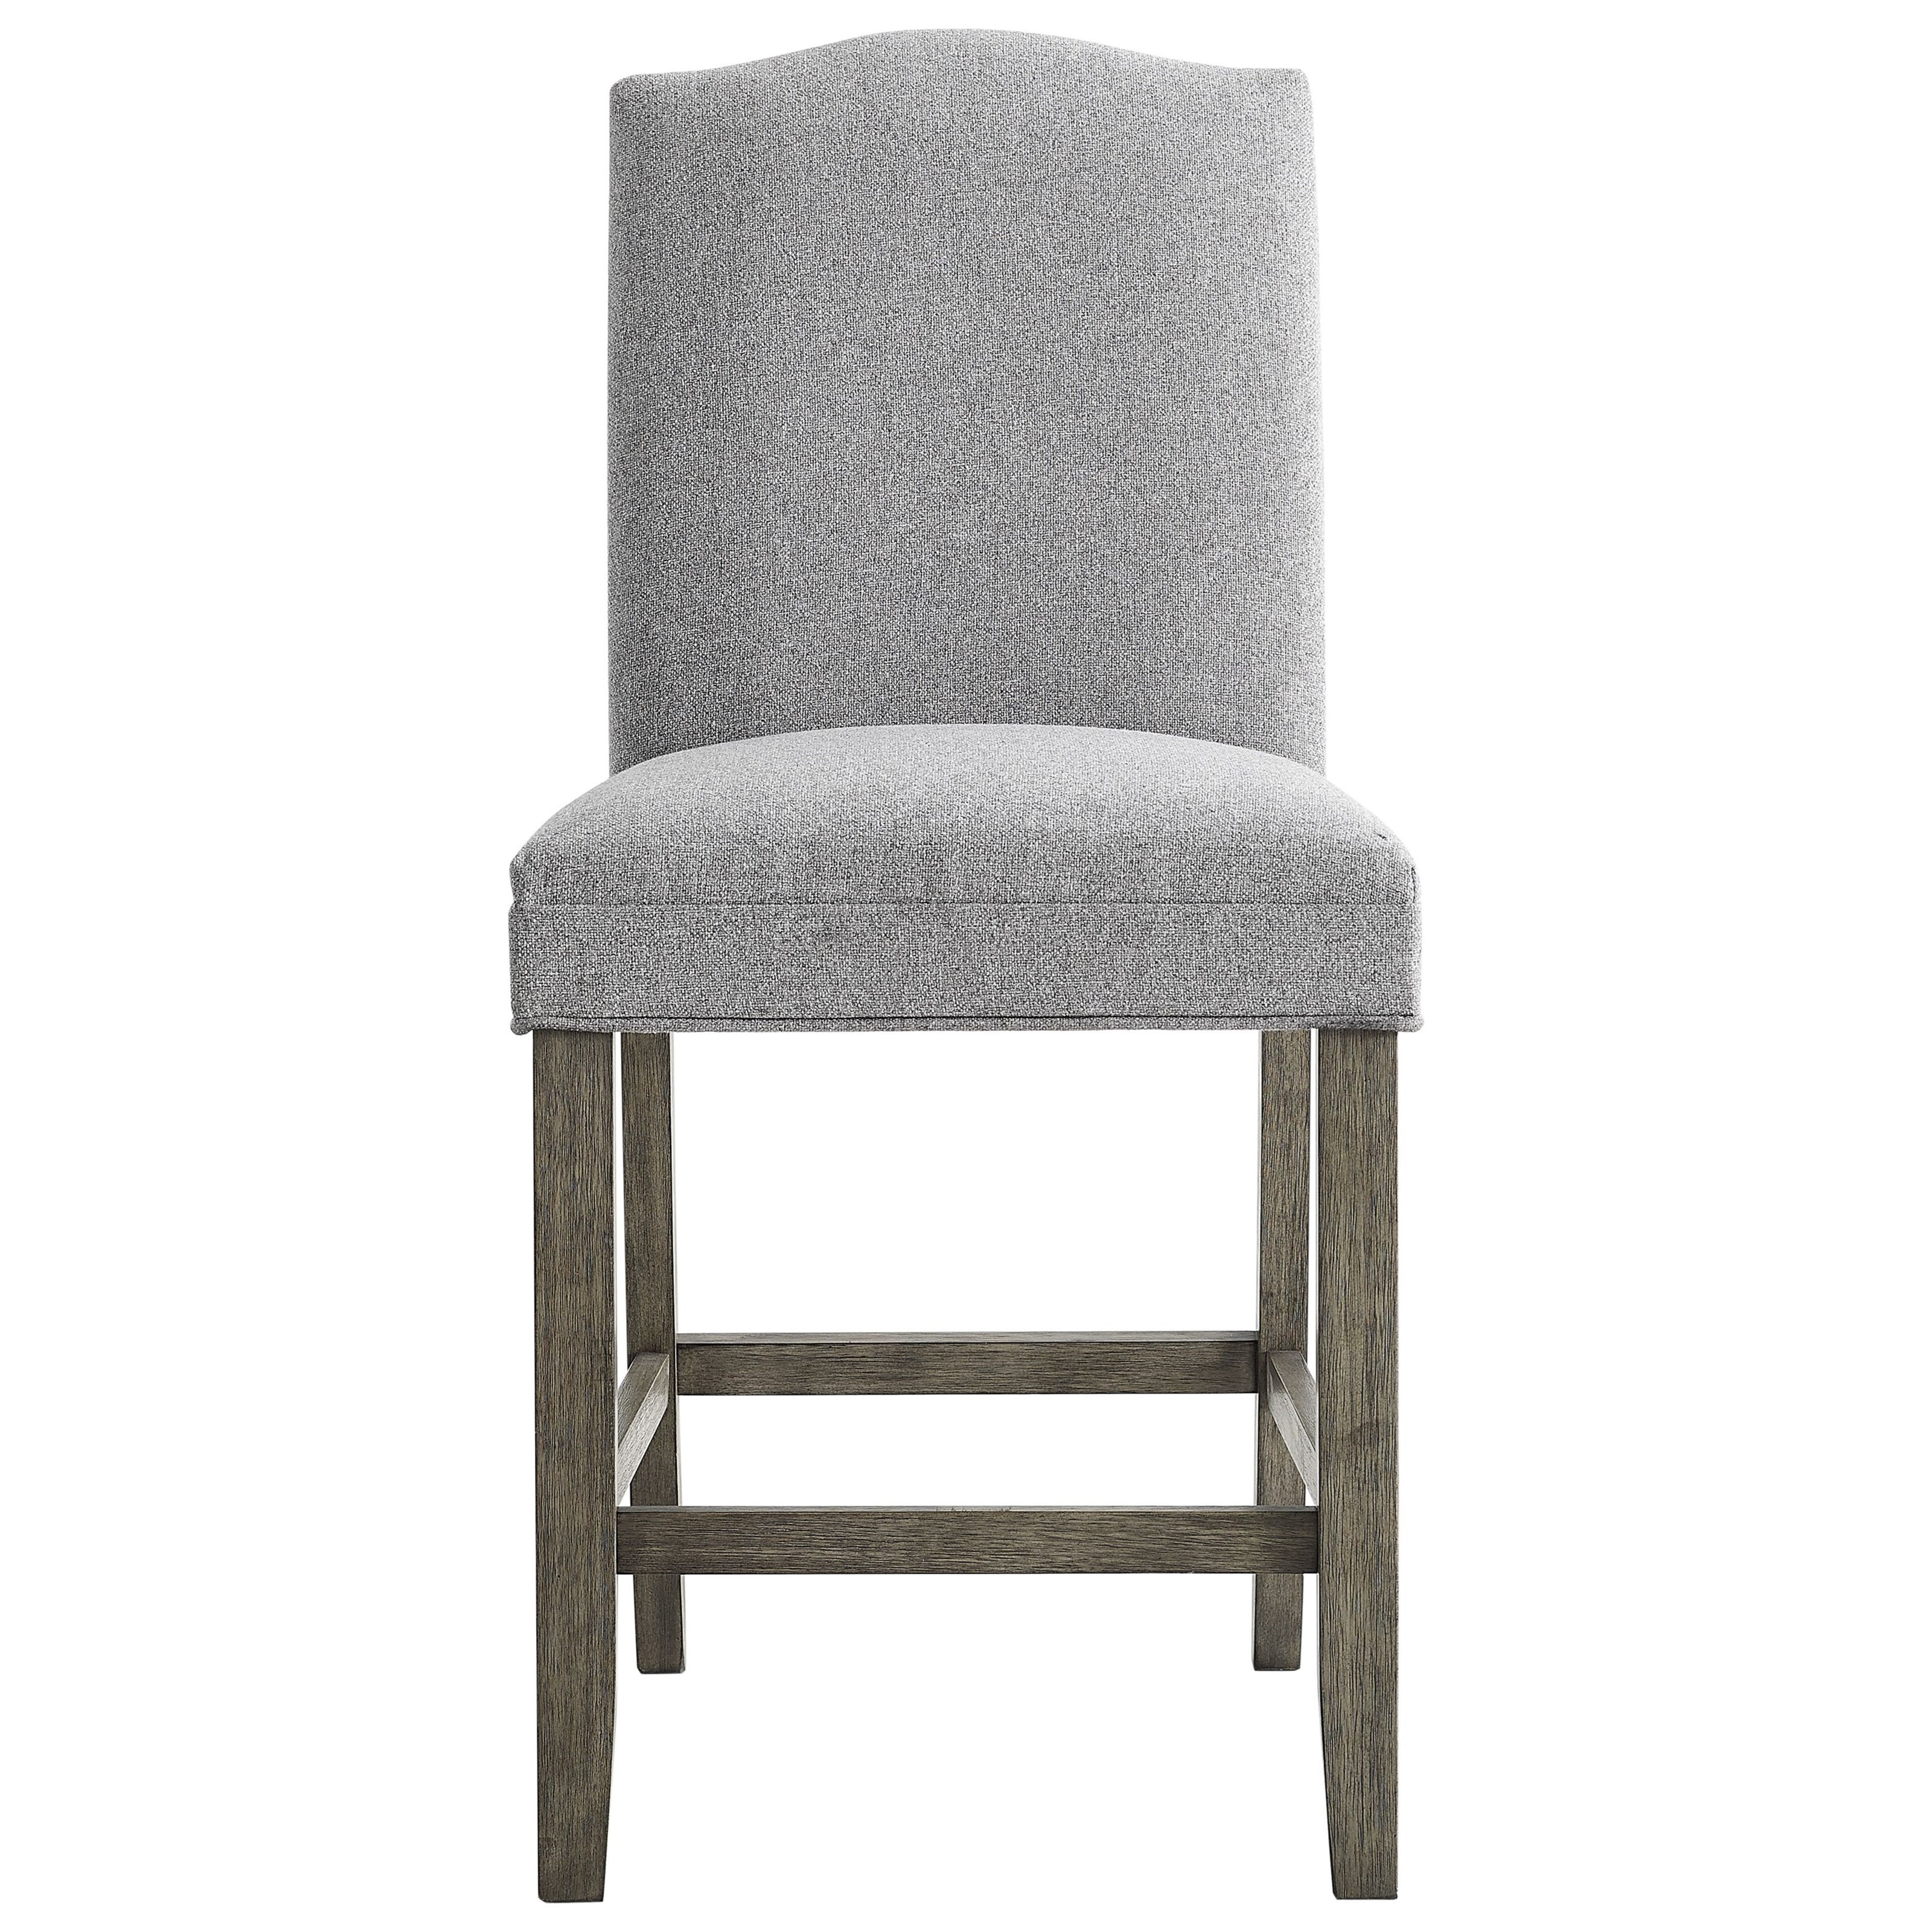 Grayson Upholstered Counter Height Chair by Steve Silver at Darvin Furniture